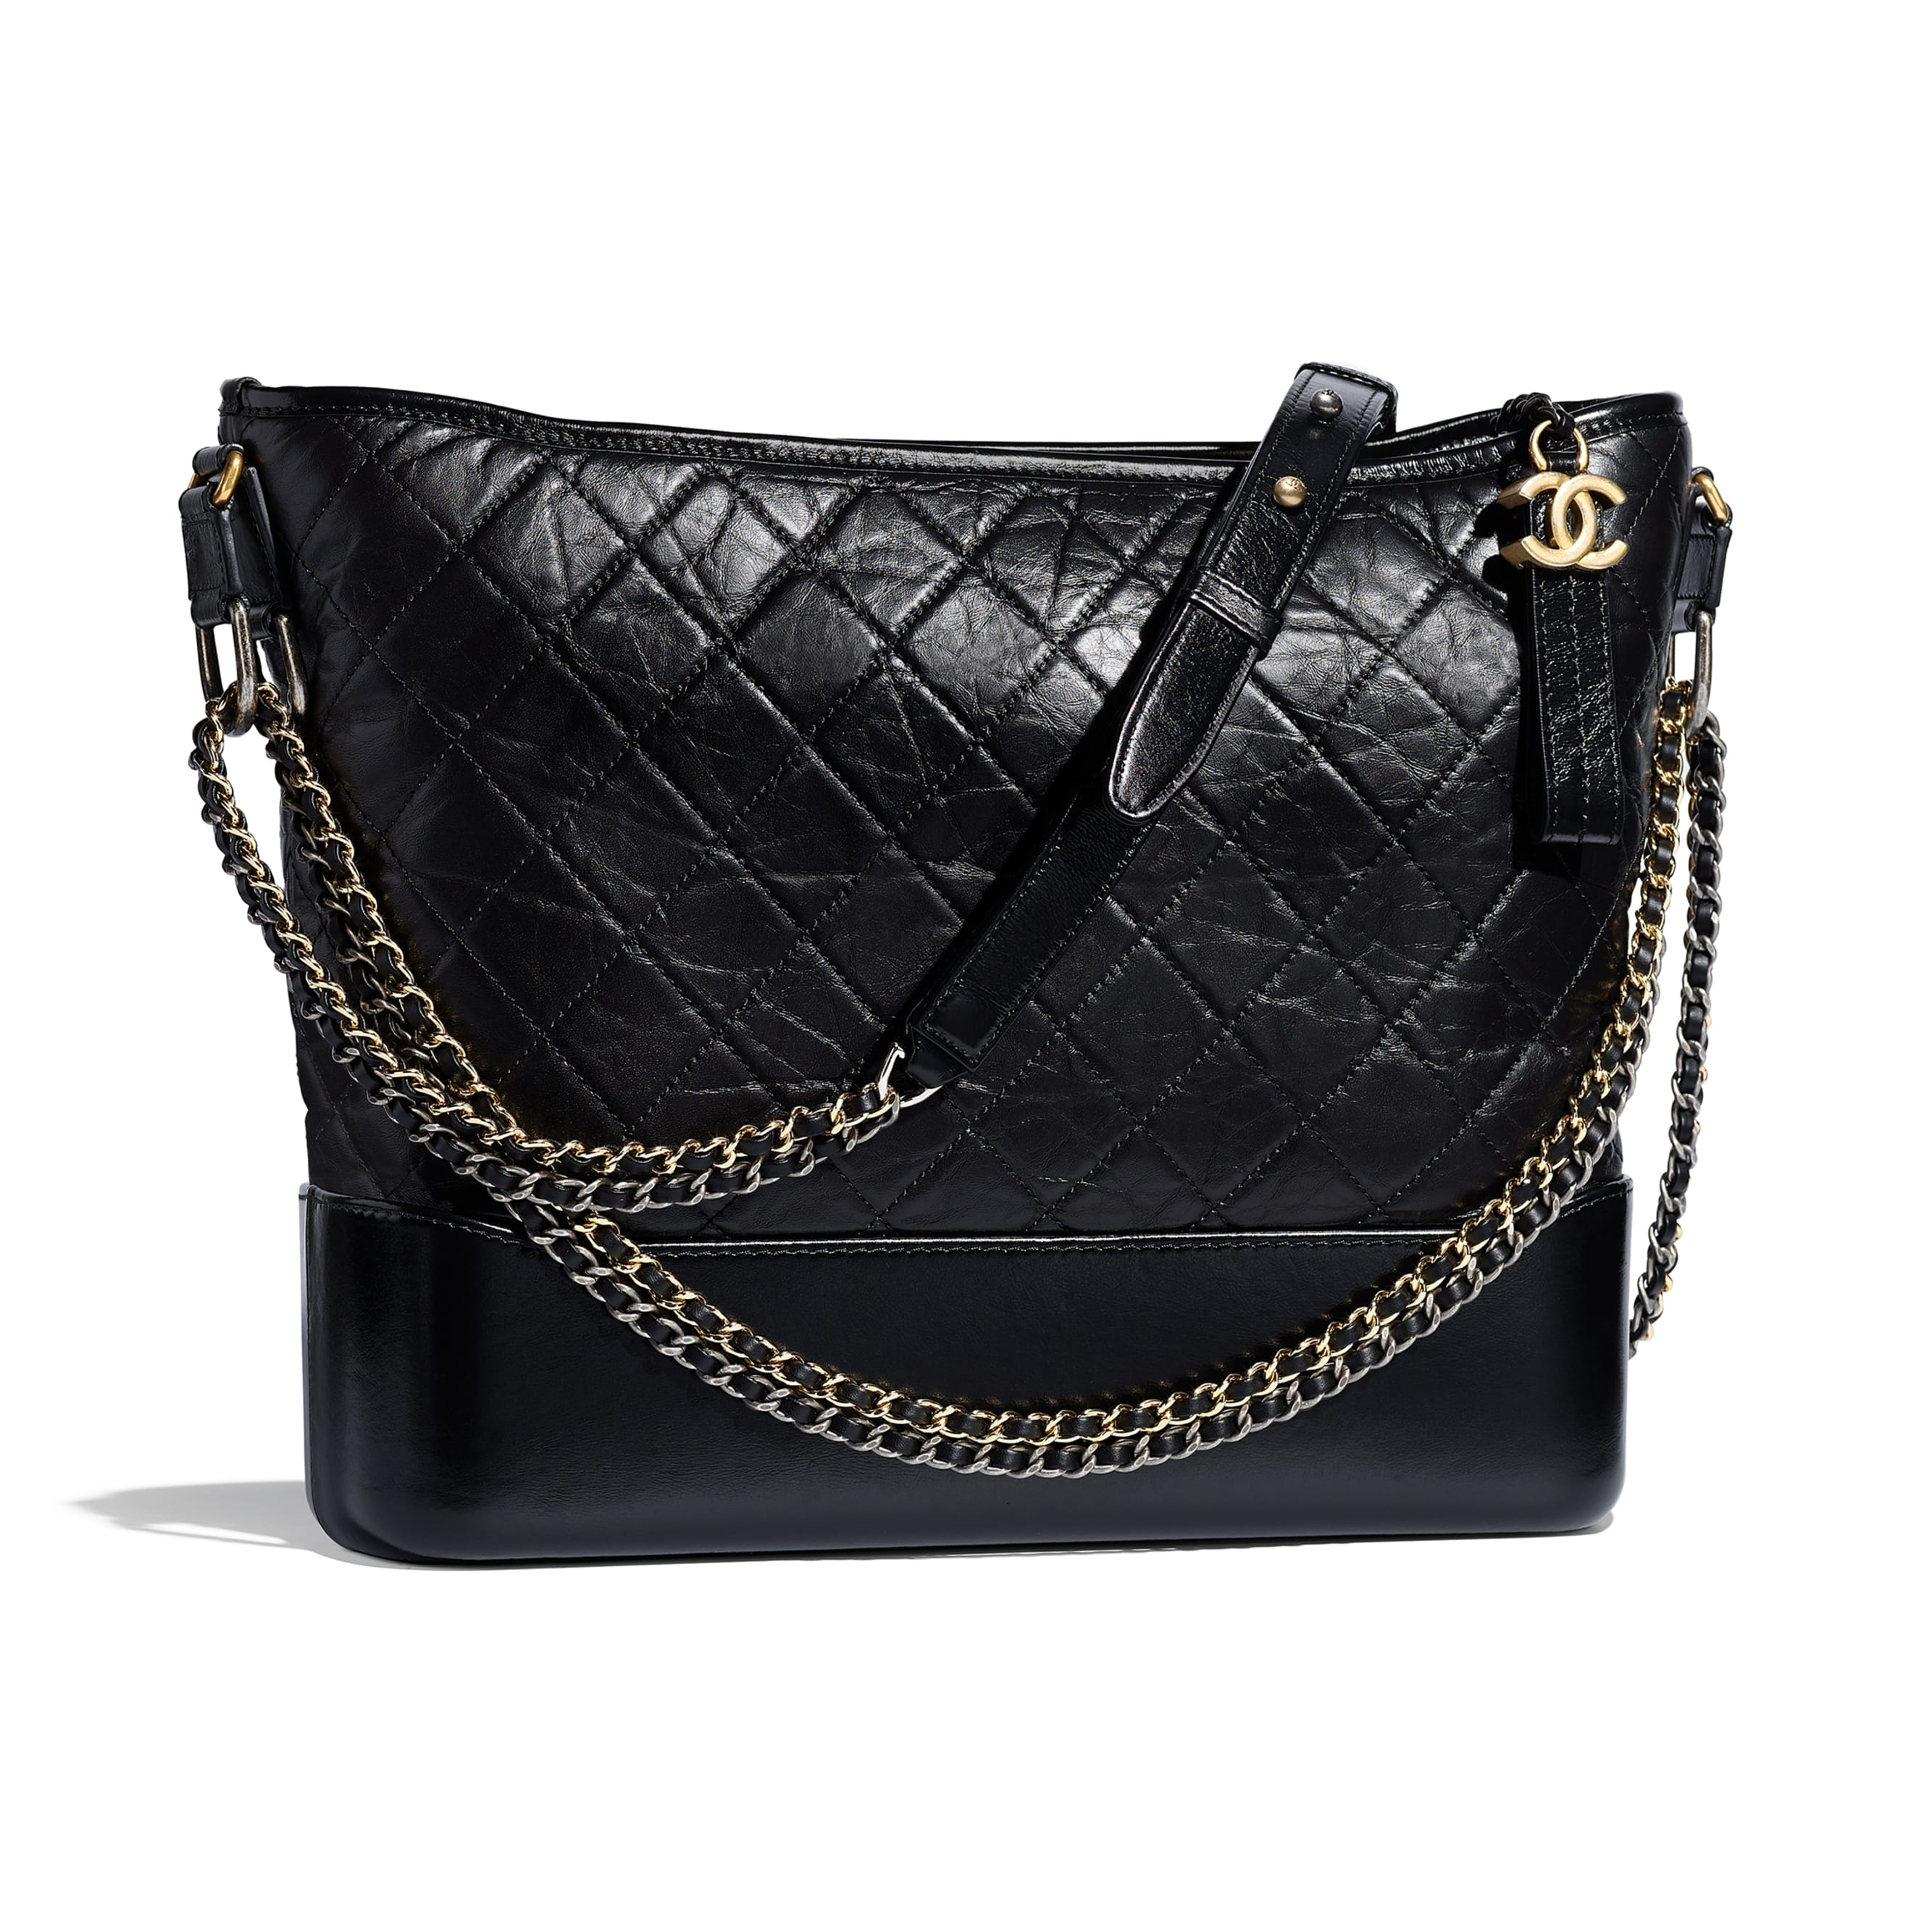 CHANEL'S GABRIELLE Large Hobo Bag - Black - Aged Calfskin, Smooth Calfskin, Silver-Tone & Gold-Tone Metal - Other view - see standard sized version